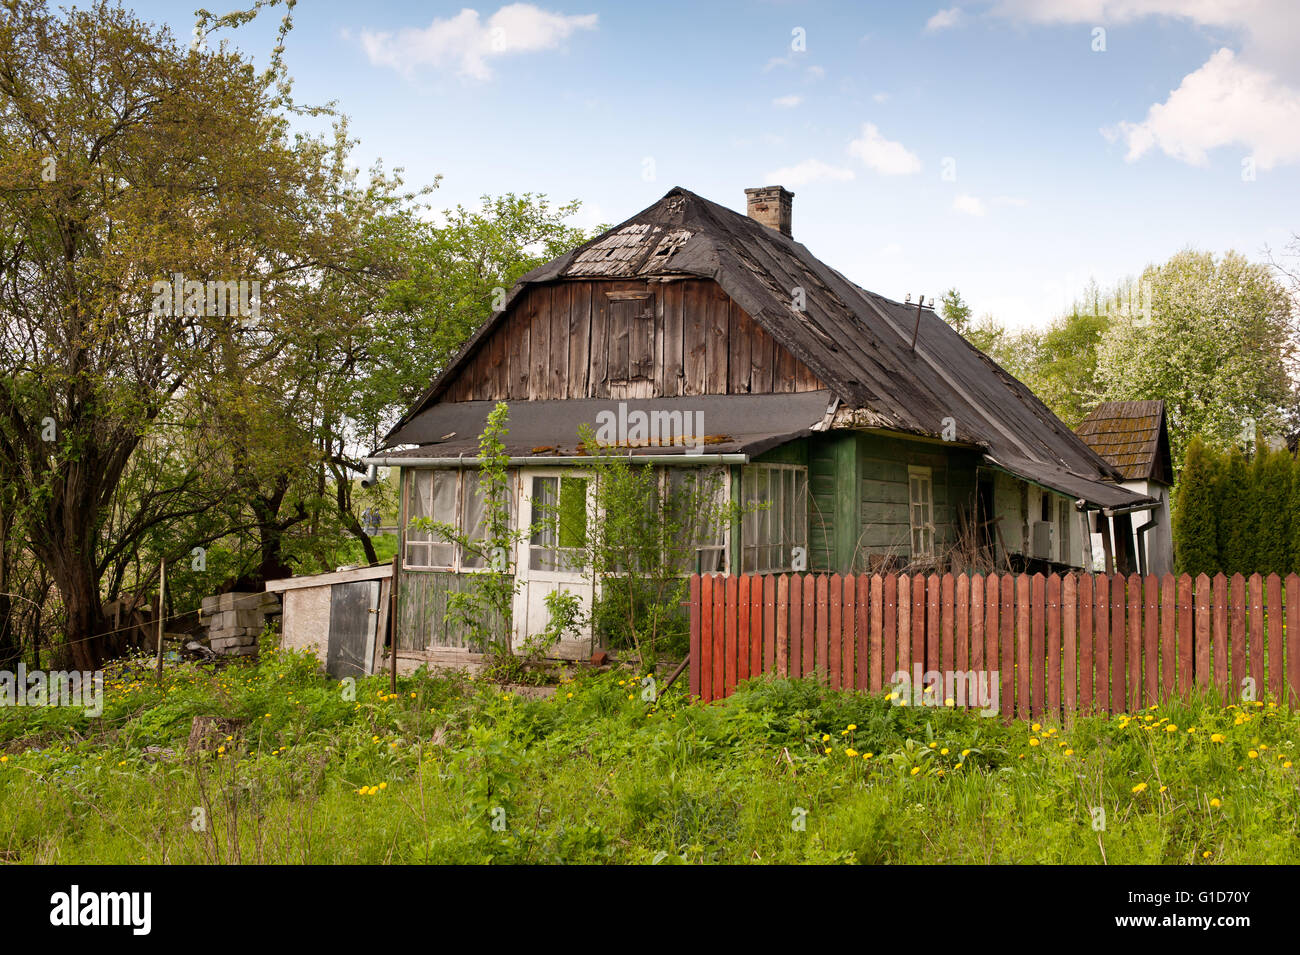 Decrepit house in Kazimierz Dolny, Poland, Europe, lorn private property exterior in natural scenery, dilapidated - Stock Image